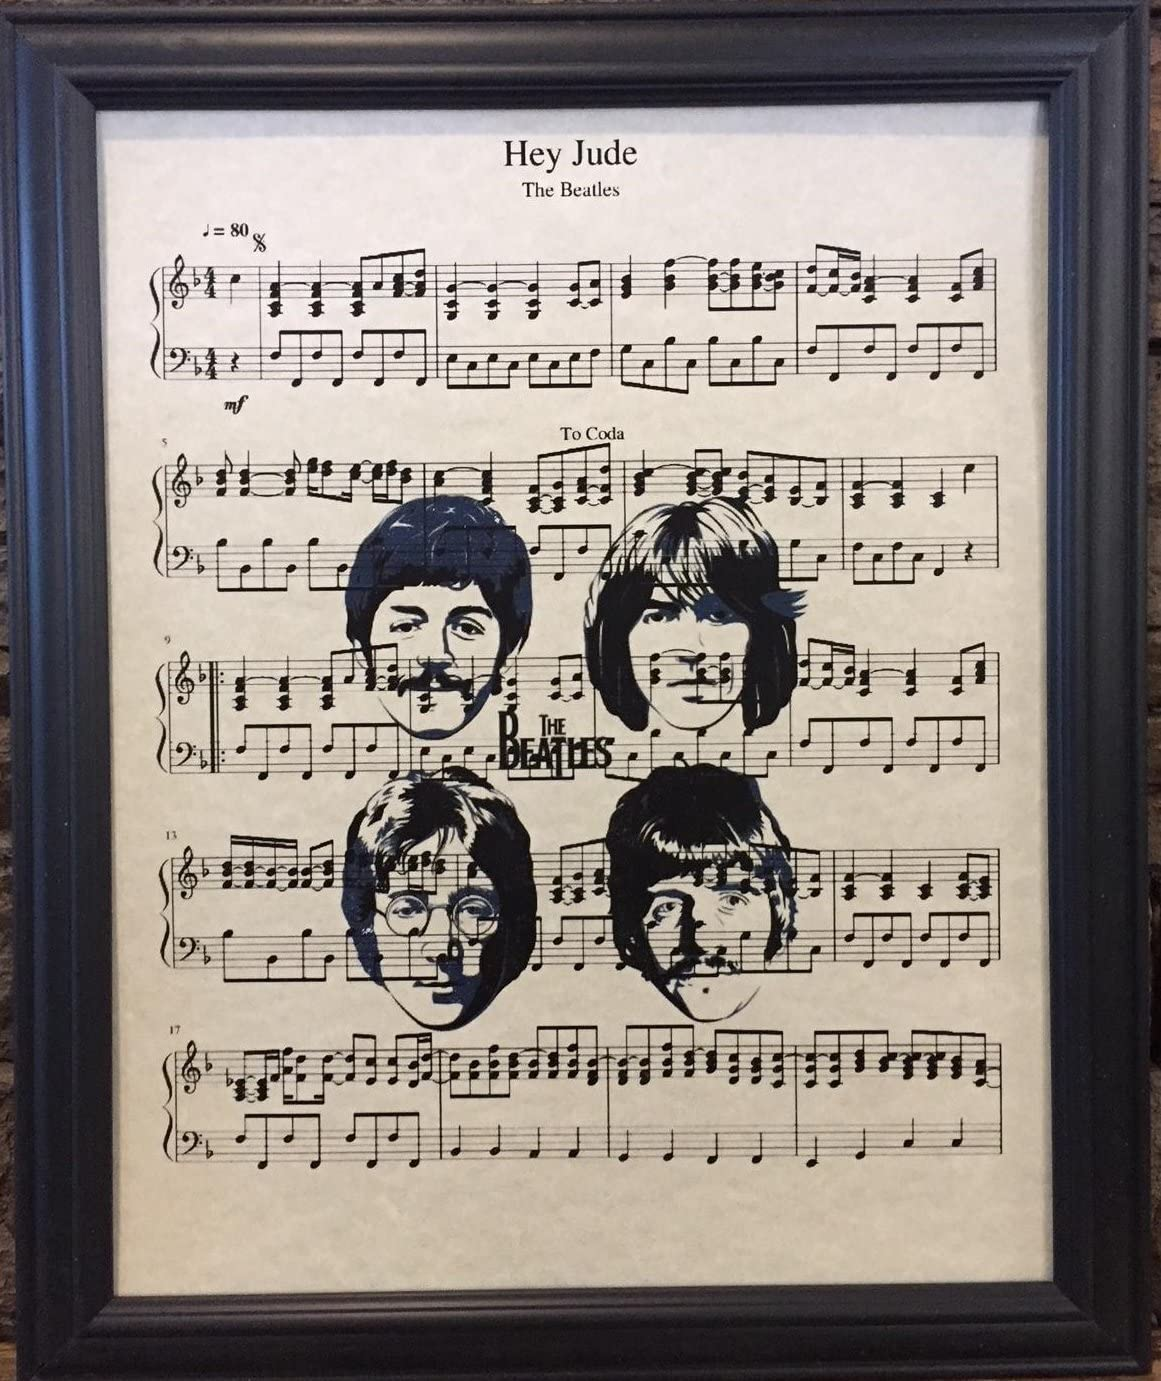 Ready Prints Hey Jude by The Beatles Music Sheet Artwork Print Picture Poster Home Office Bedroom Nursery Kitchen Wall Decor - unframed